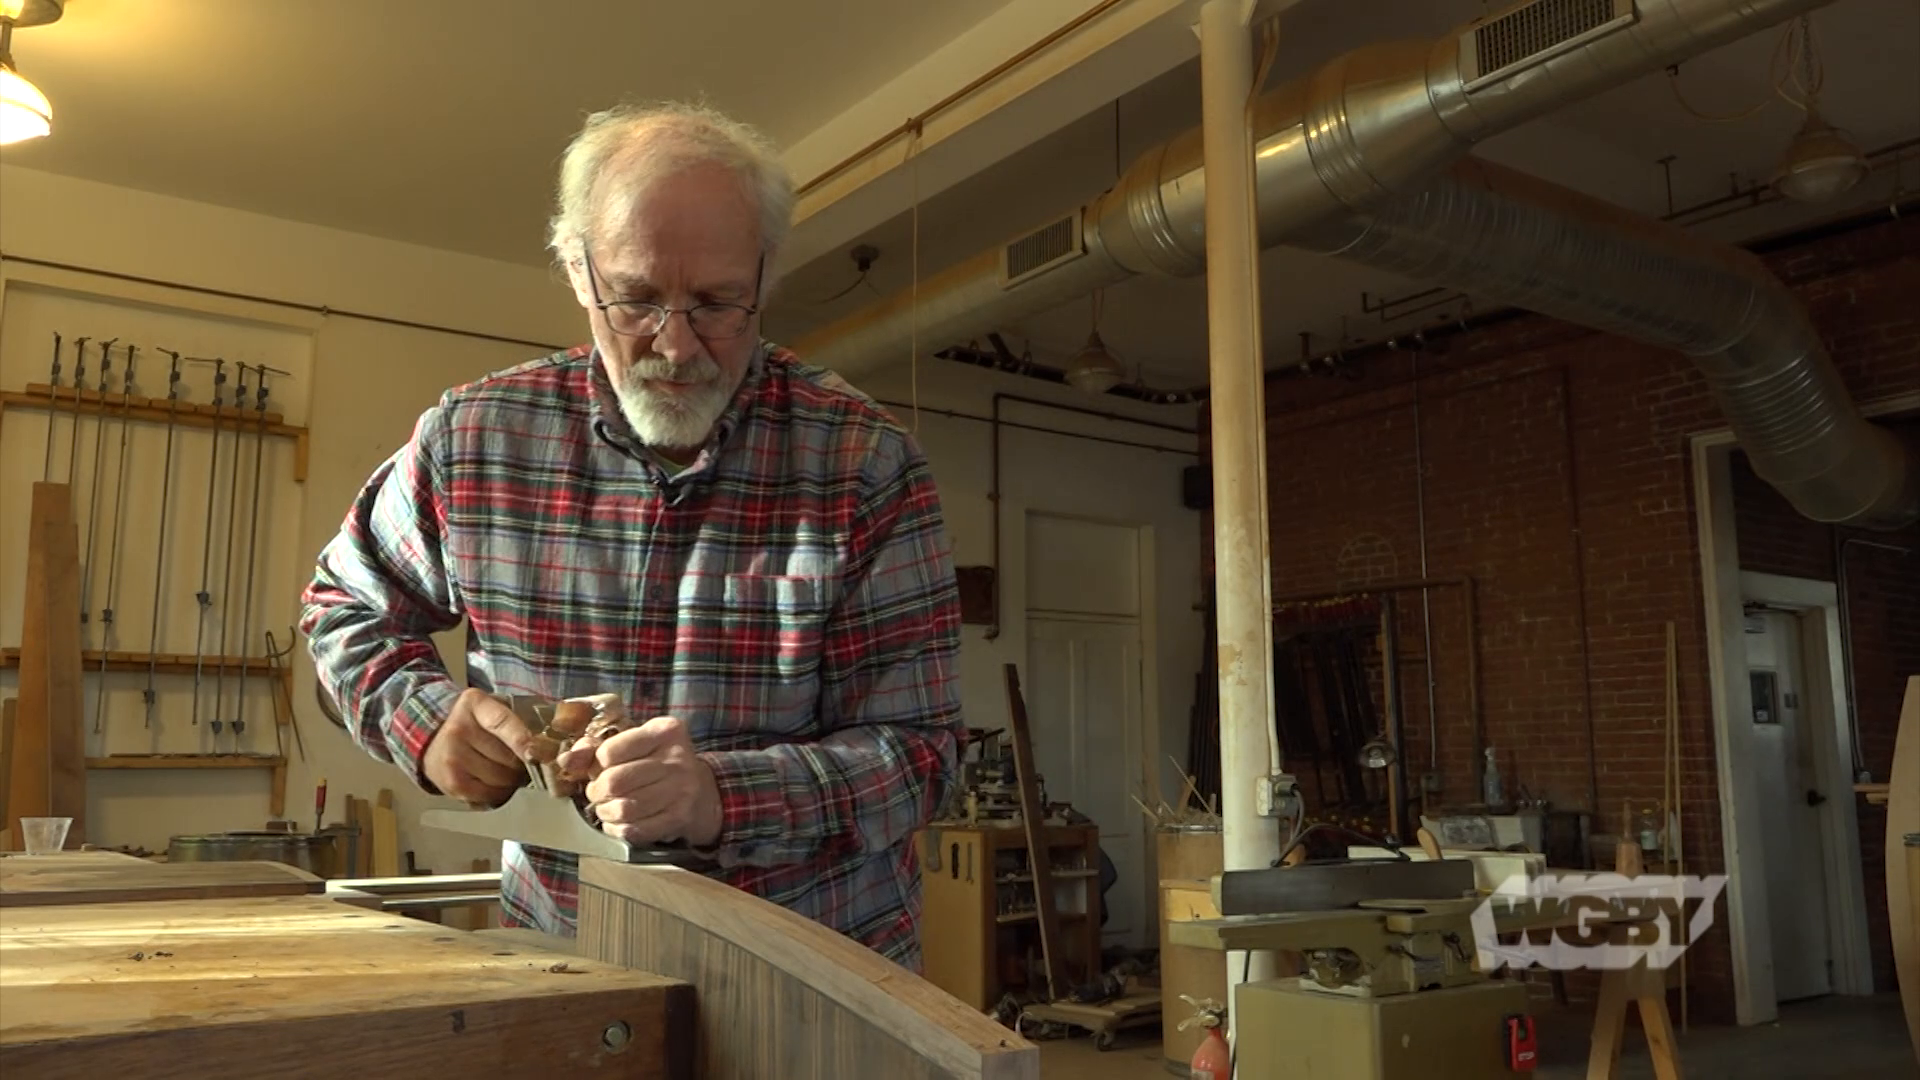 Woodworker and fine furniture maker Silas Kopf crafts world-class, Renaissane-style marquetry in his Easthampton, MA studio.